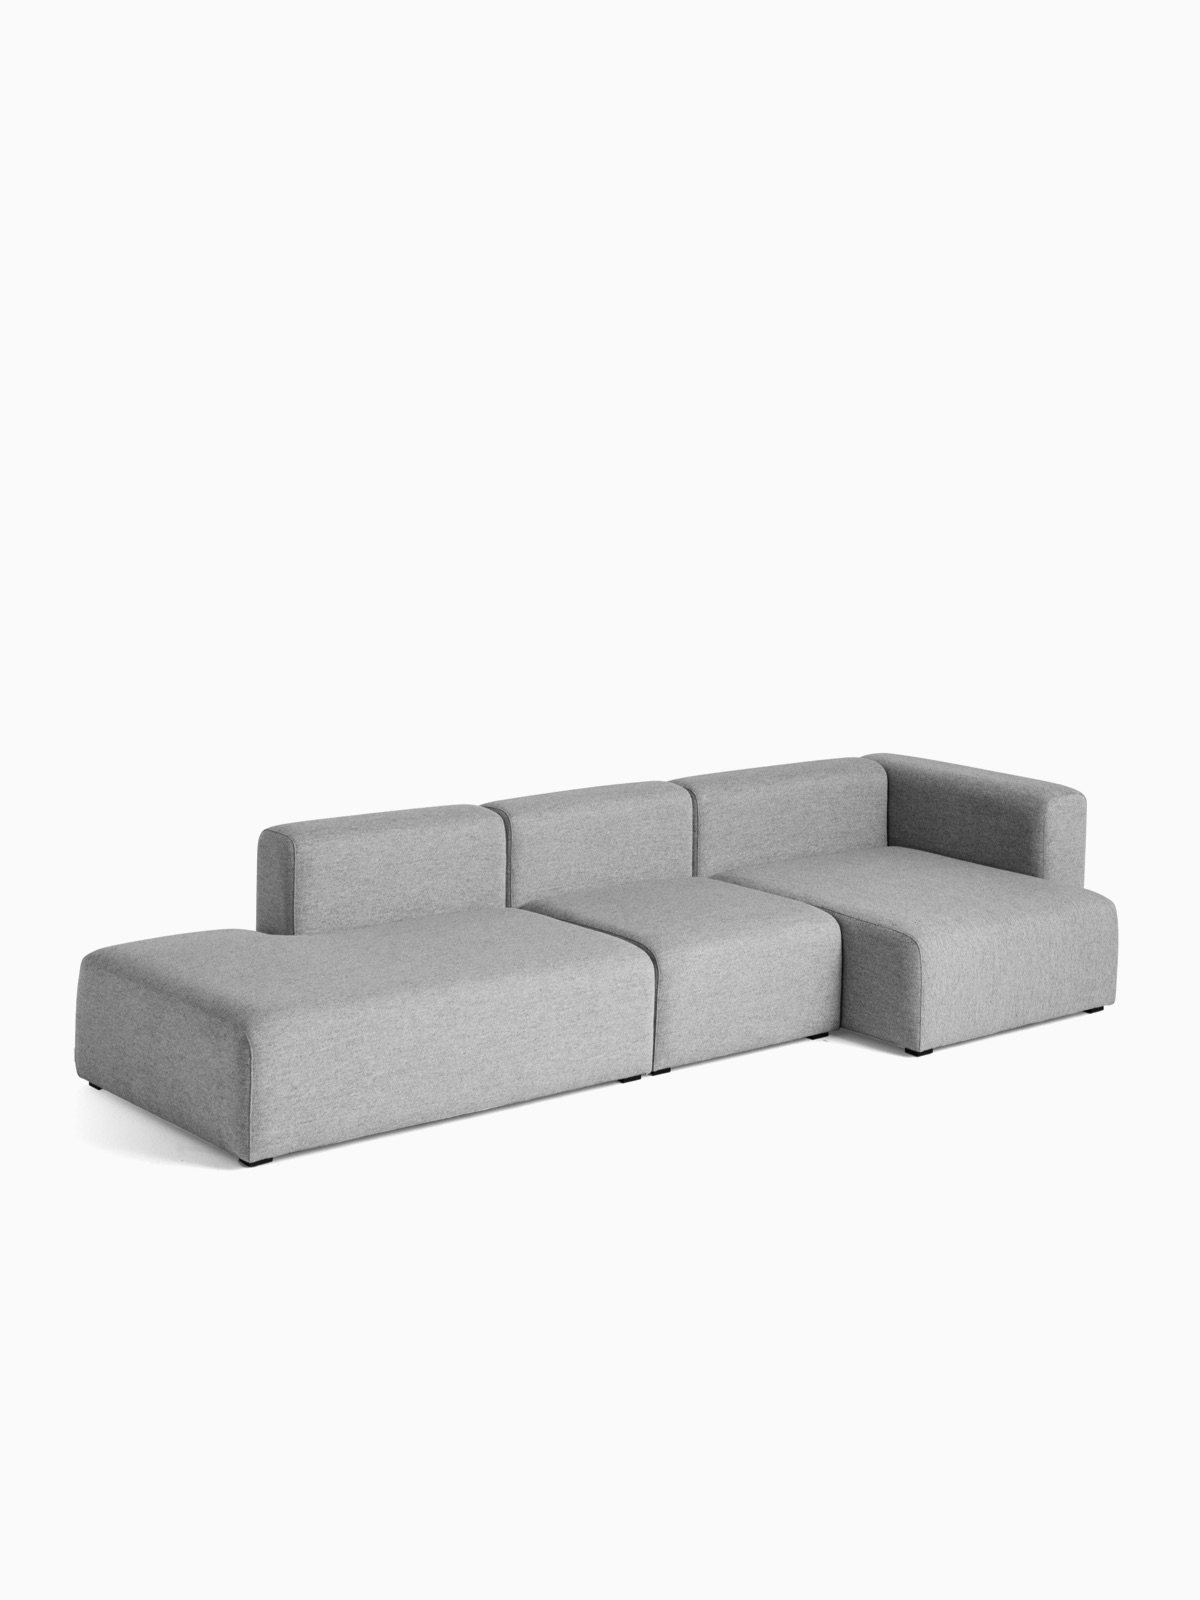 Mags Sectional Sofas